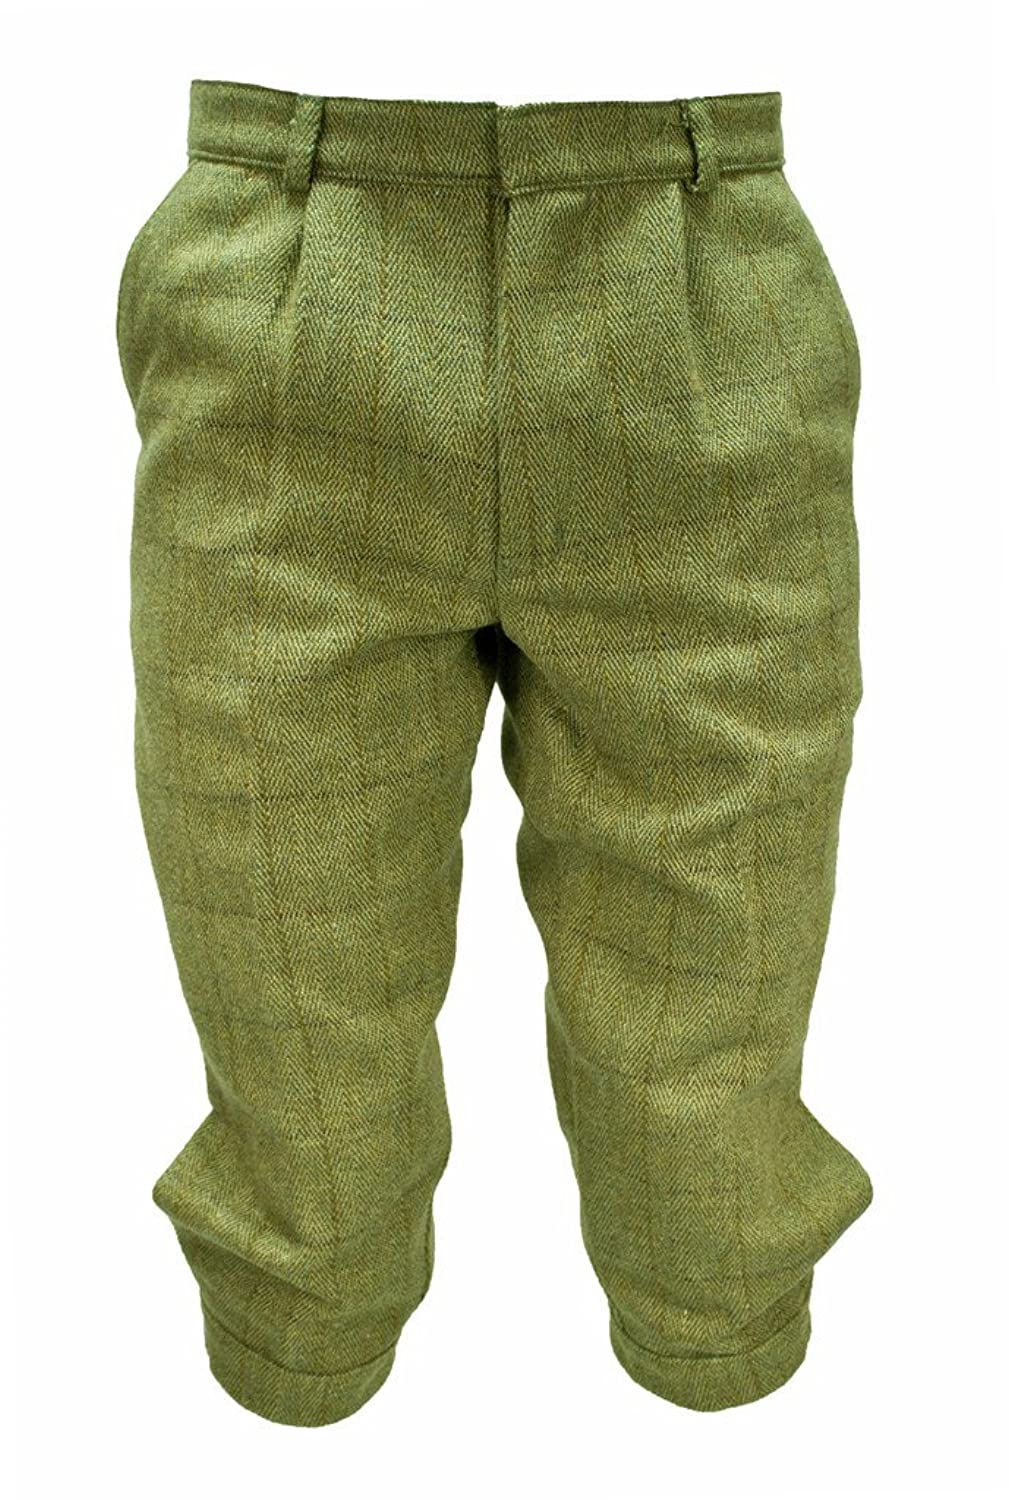 Rosie the Riveter Costume & Outfit Ideas Tweed Breeks Trousers Pants Plus Fours by WWK / WorkWear King $54.95 AT vintagedancer.com